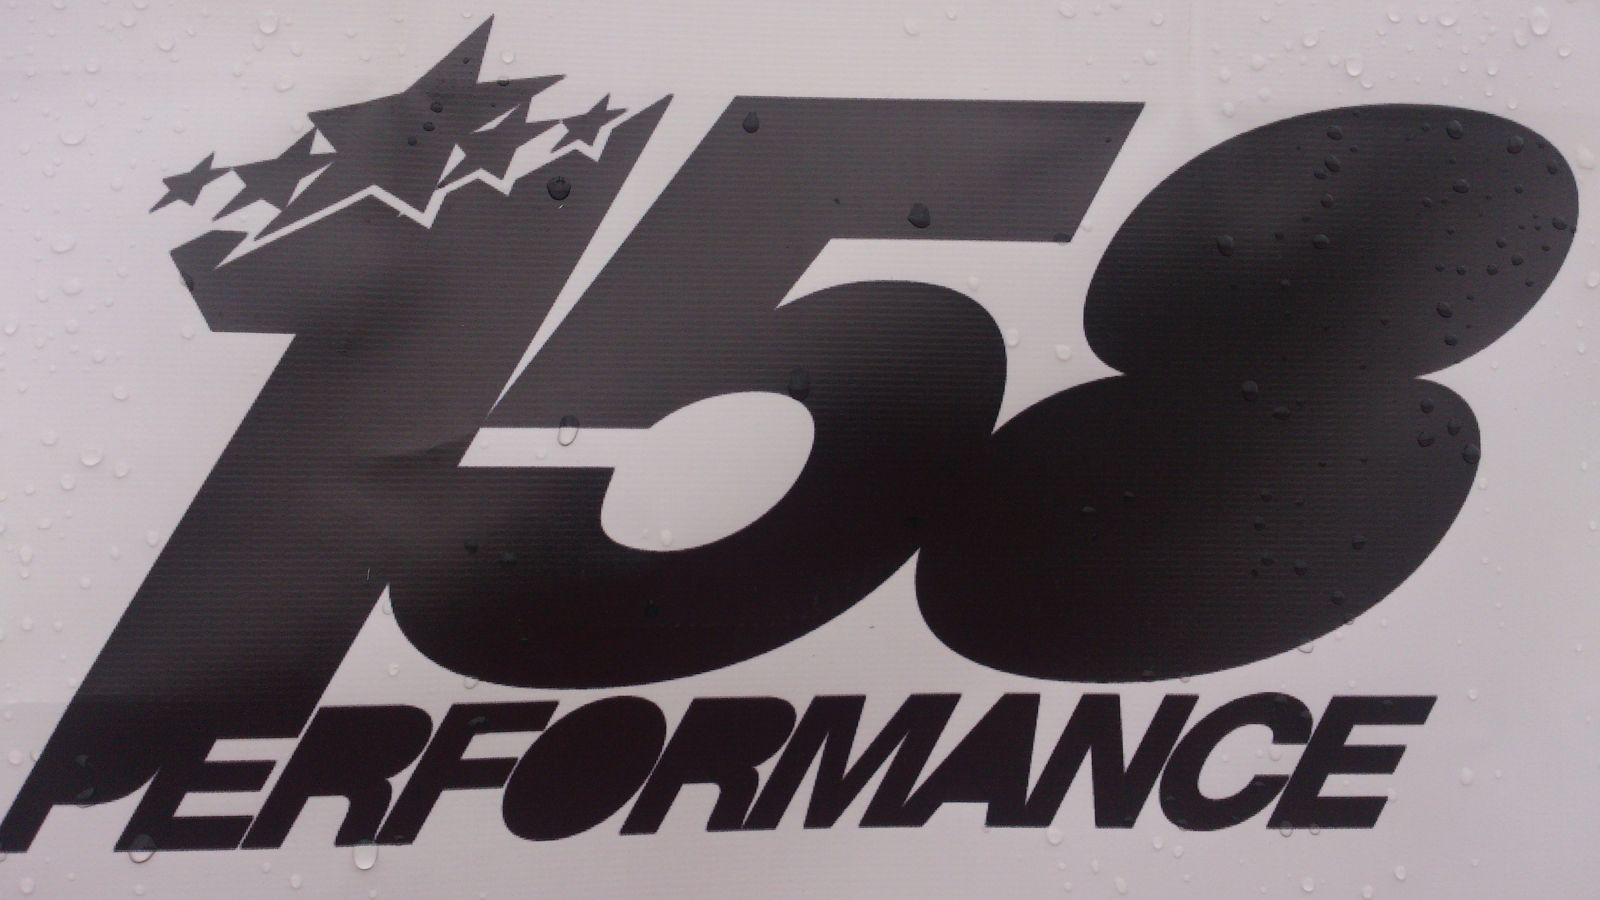 158 Performance Ltd